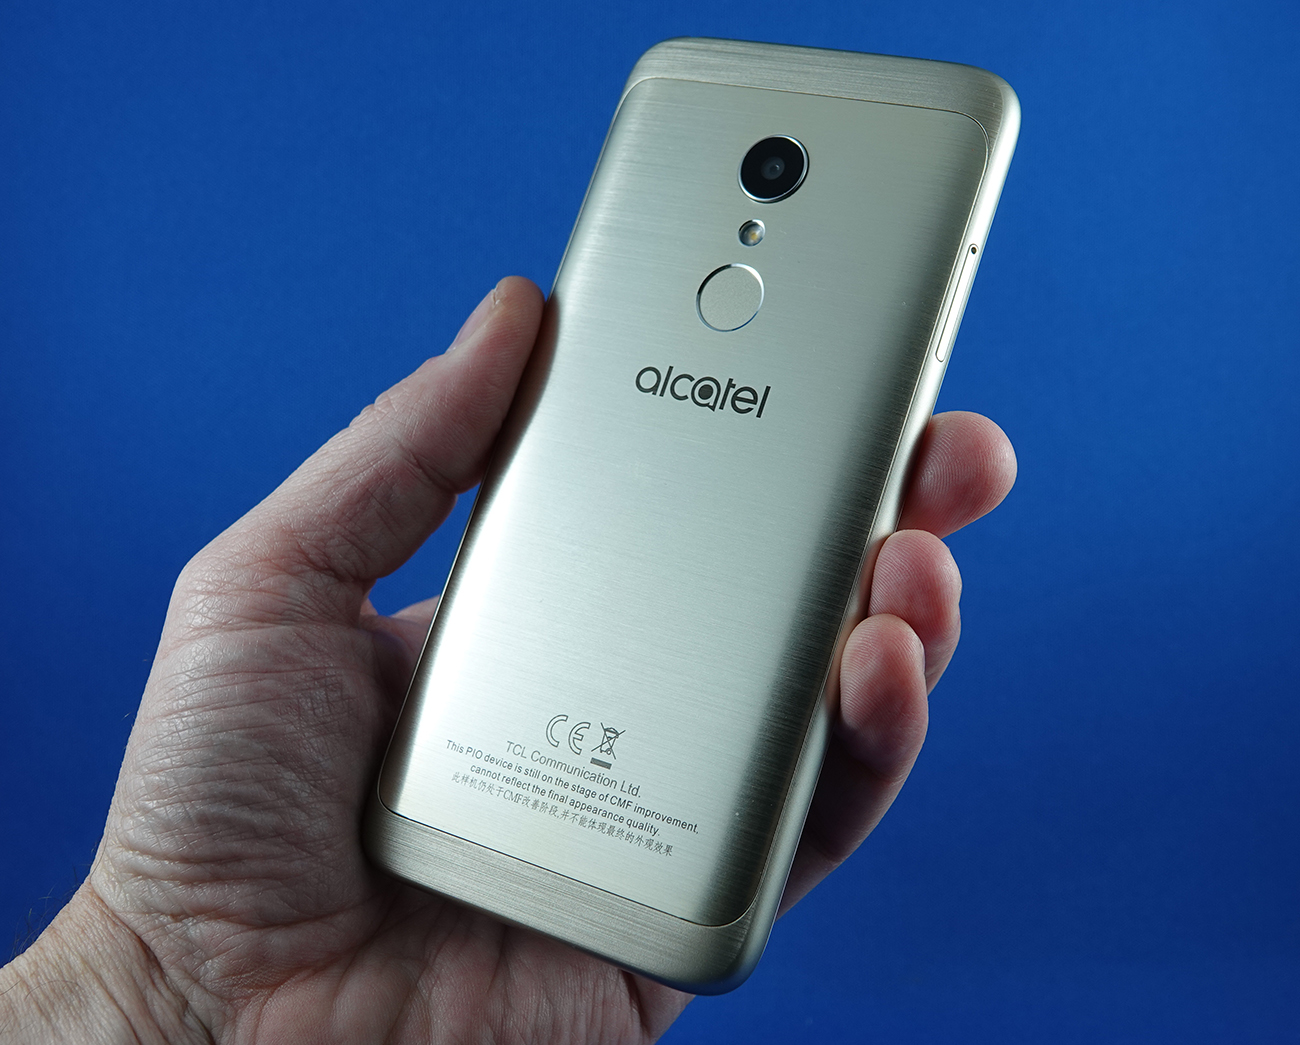 outlet store d1455 4dc88 Alcatel 1C review - At $89 through Telstra it's basically theft it's ...